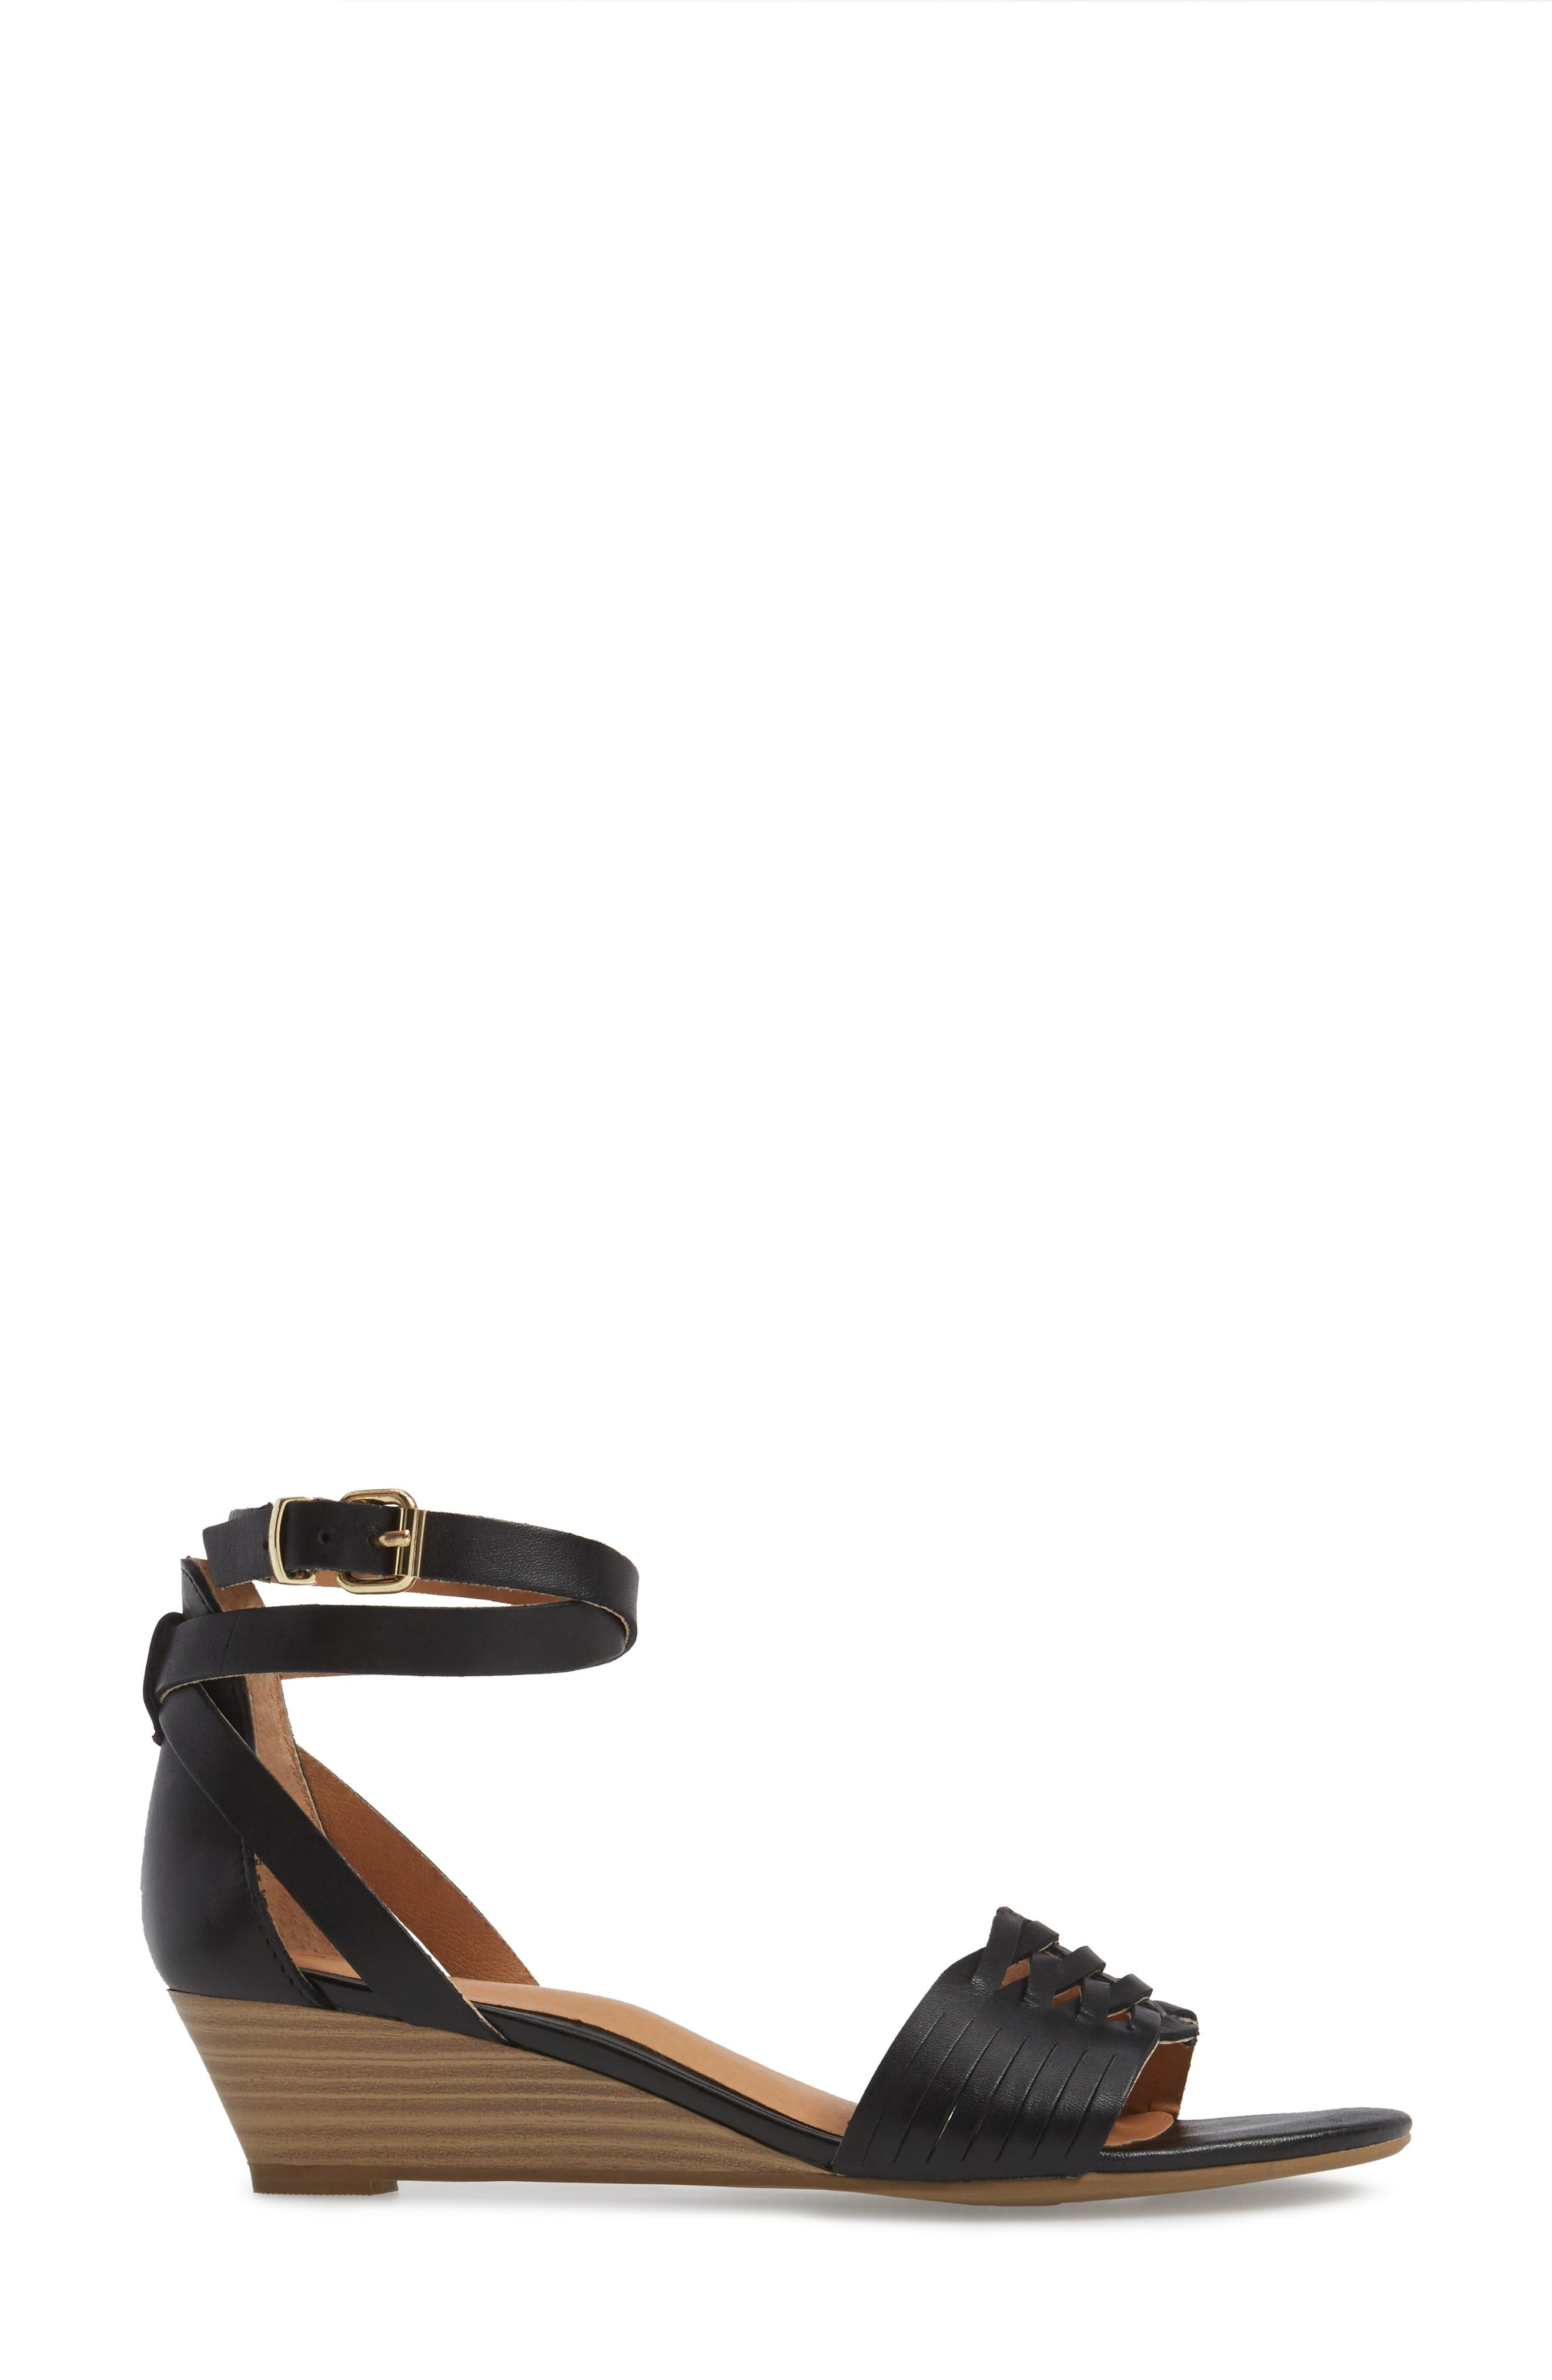 Alternate Image 3  - Seychelles Sincere Wraparound Wedge Sandal (Women)